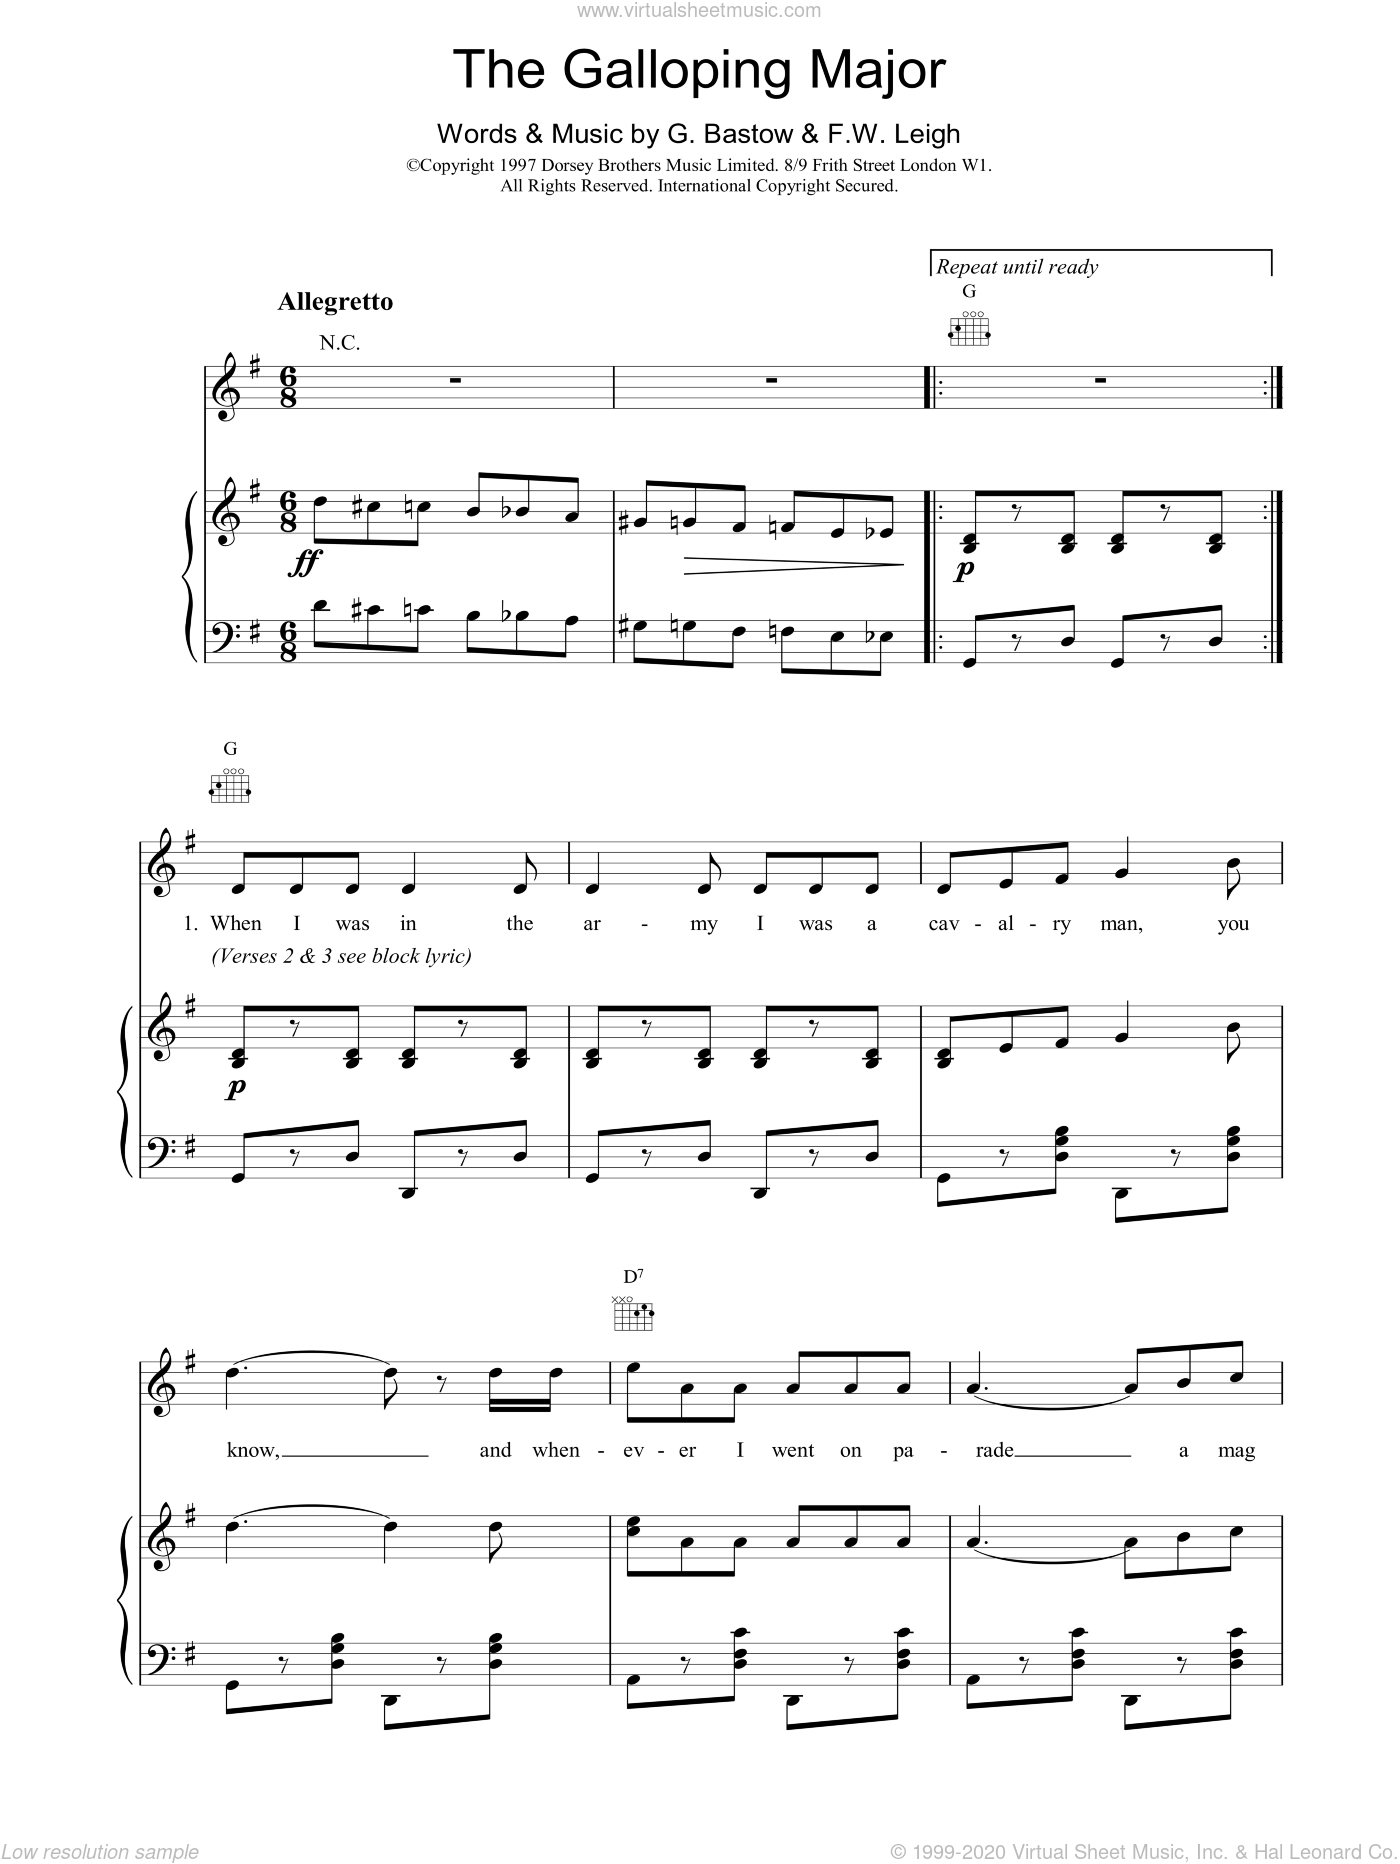 The Galloping Major sheet music for voice, piano or guitar by Fred W. Leigh. Score Image Preview.